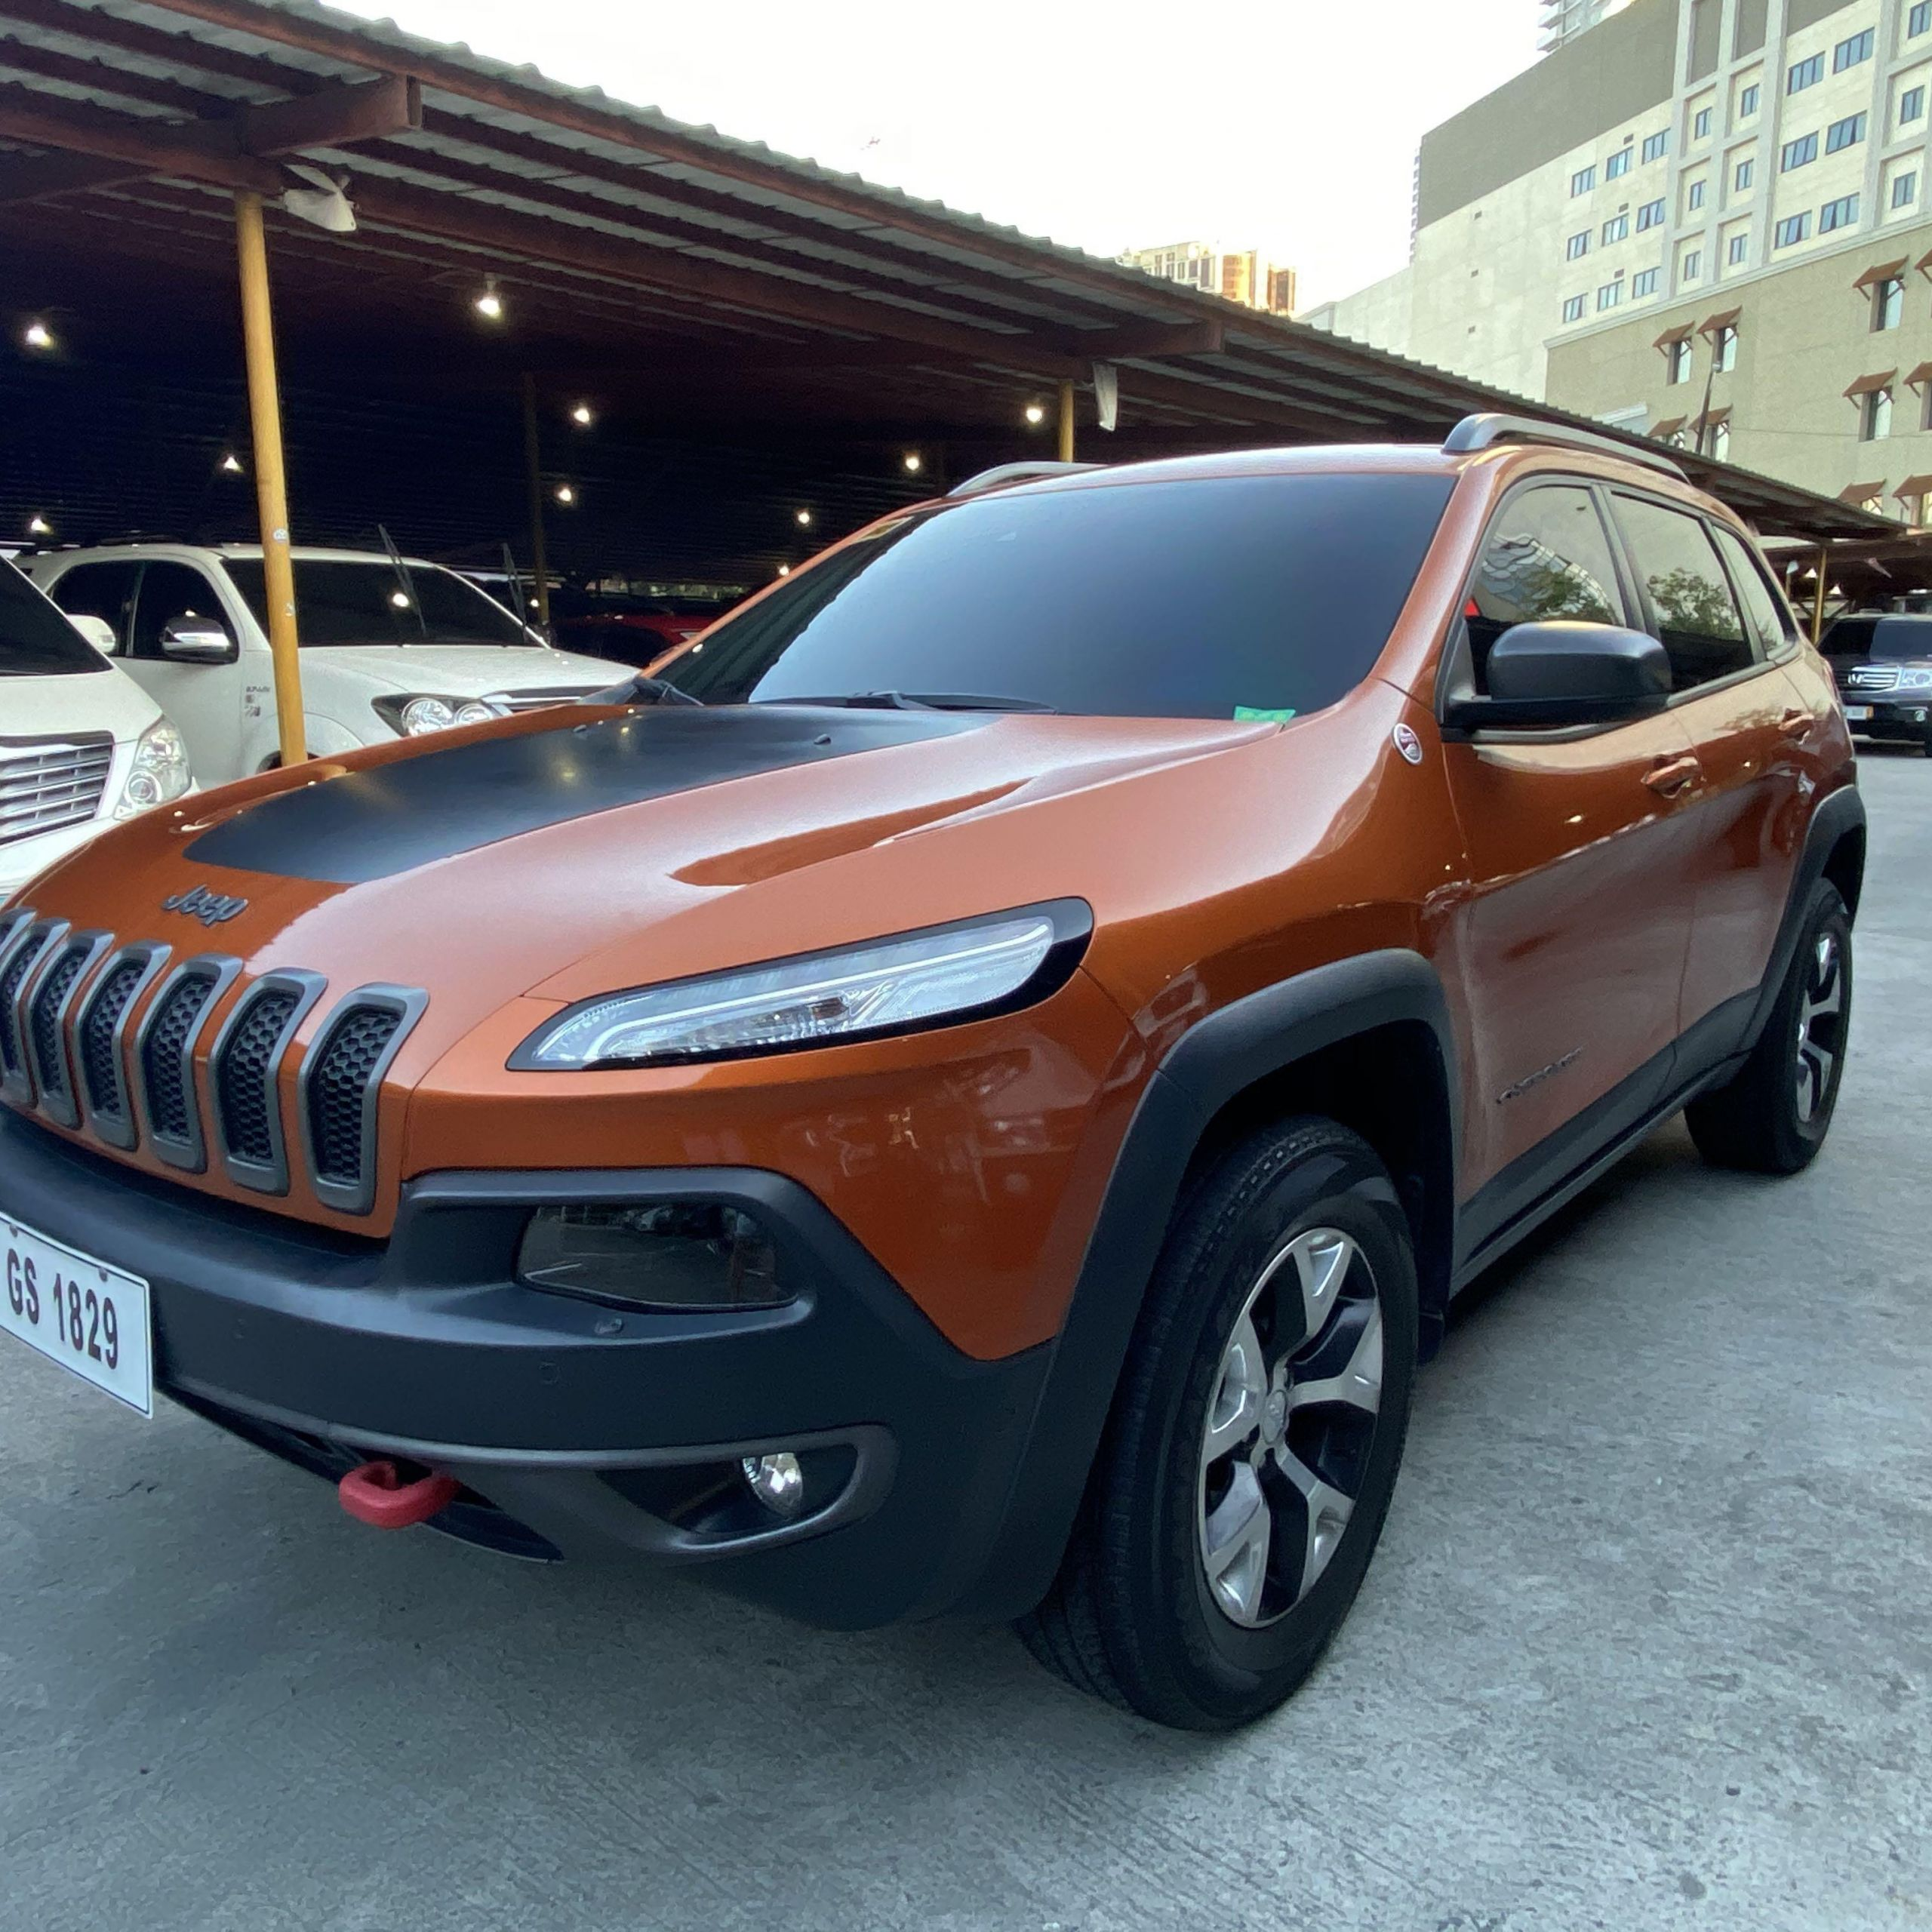 Used Cars for Sale 0 Apr Finance Unique Jeep Cherokee Trailhawk Auto Cars for Sale Used Cars On